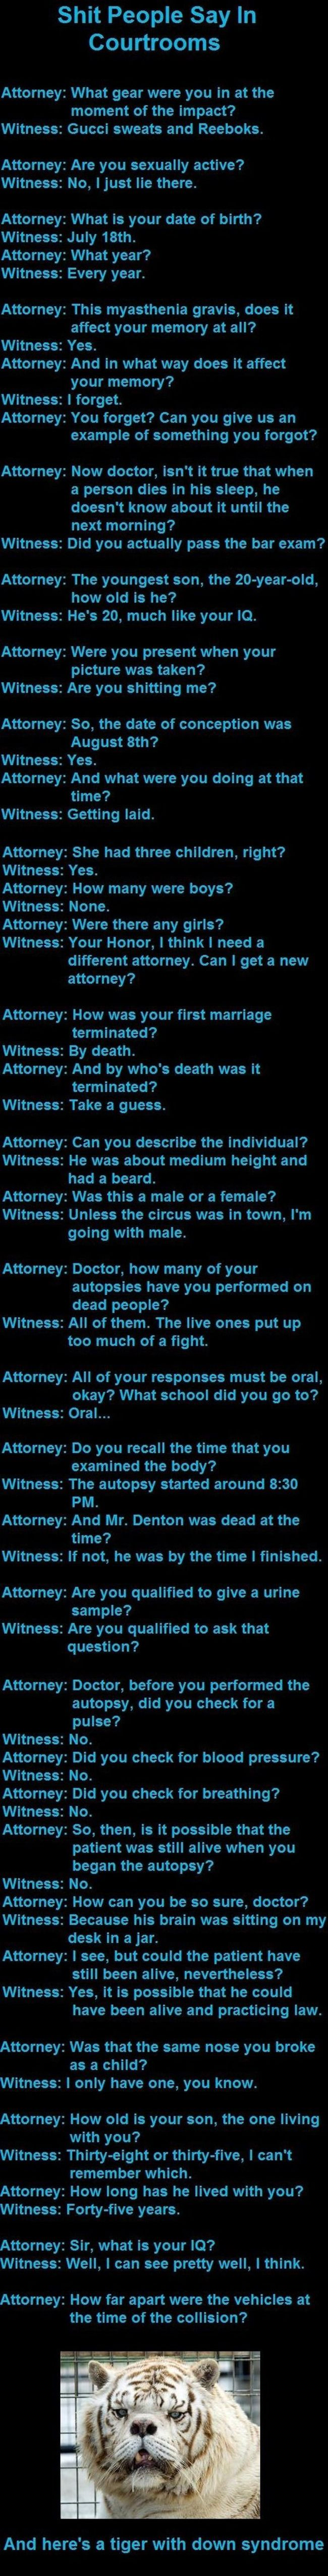 Funny things said in court...